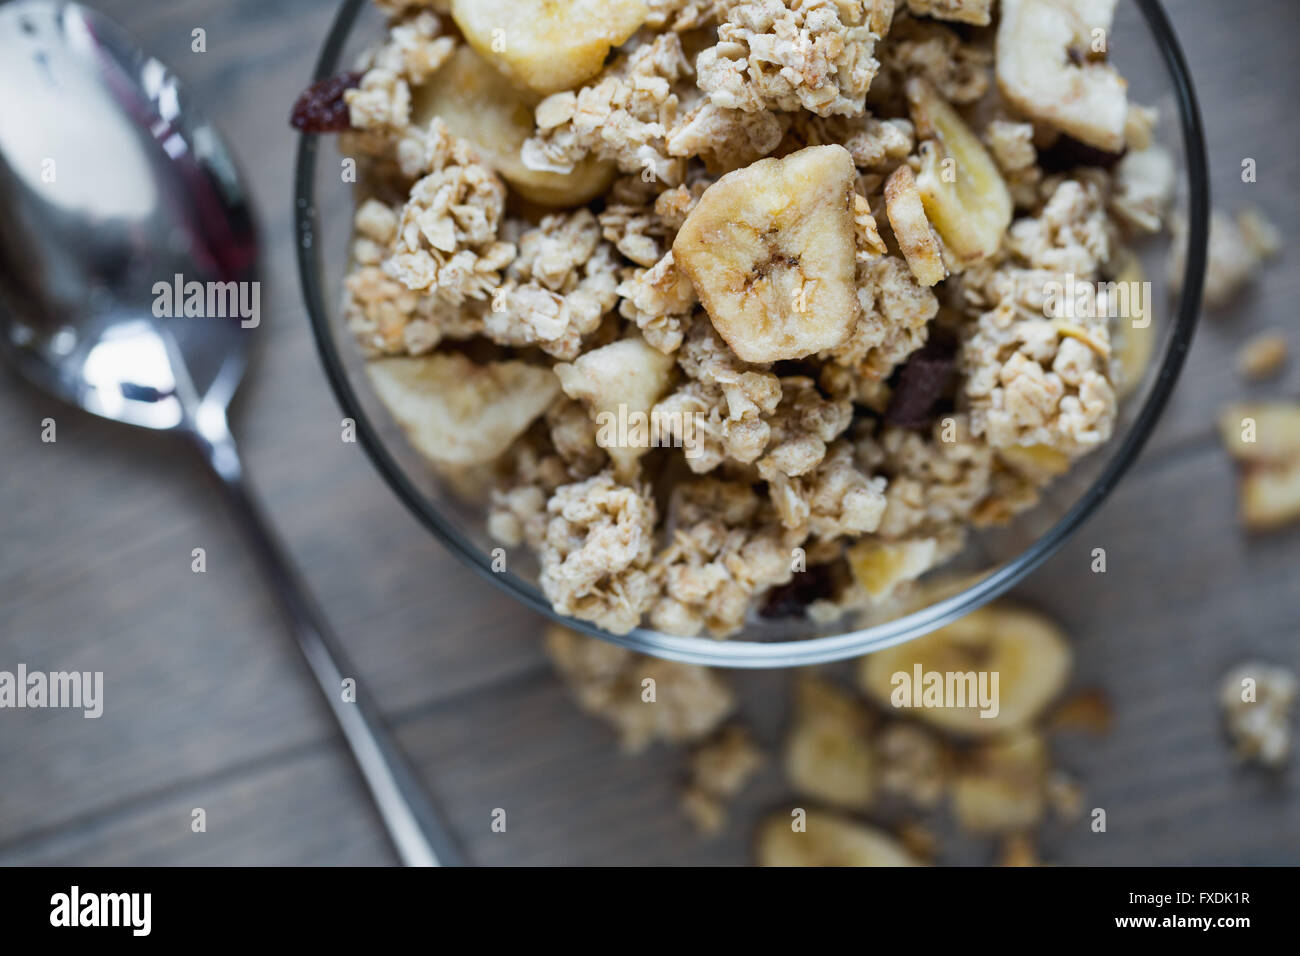 Bowl of granola with banana on wooden table. - Stock Image